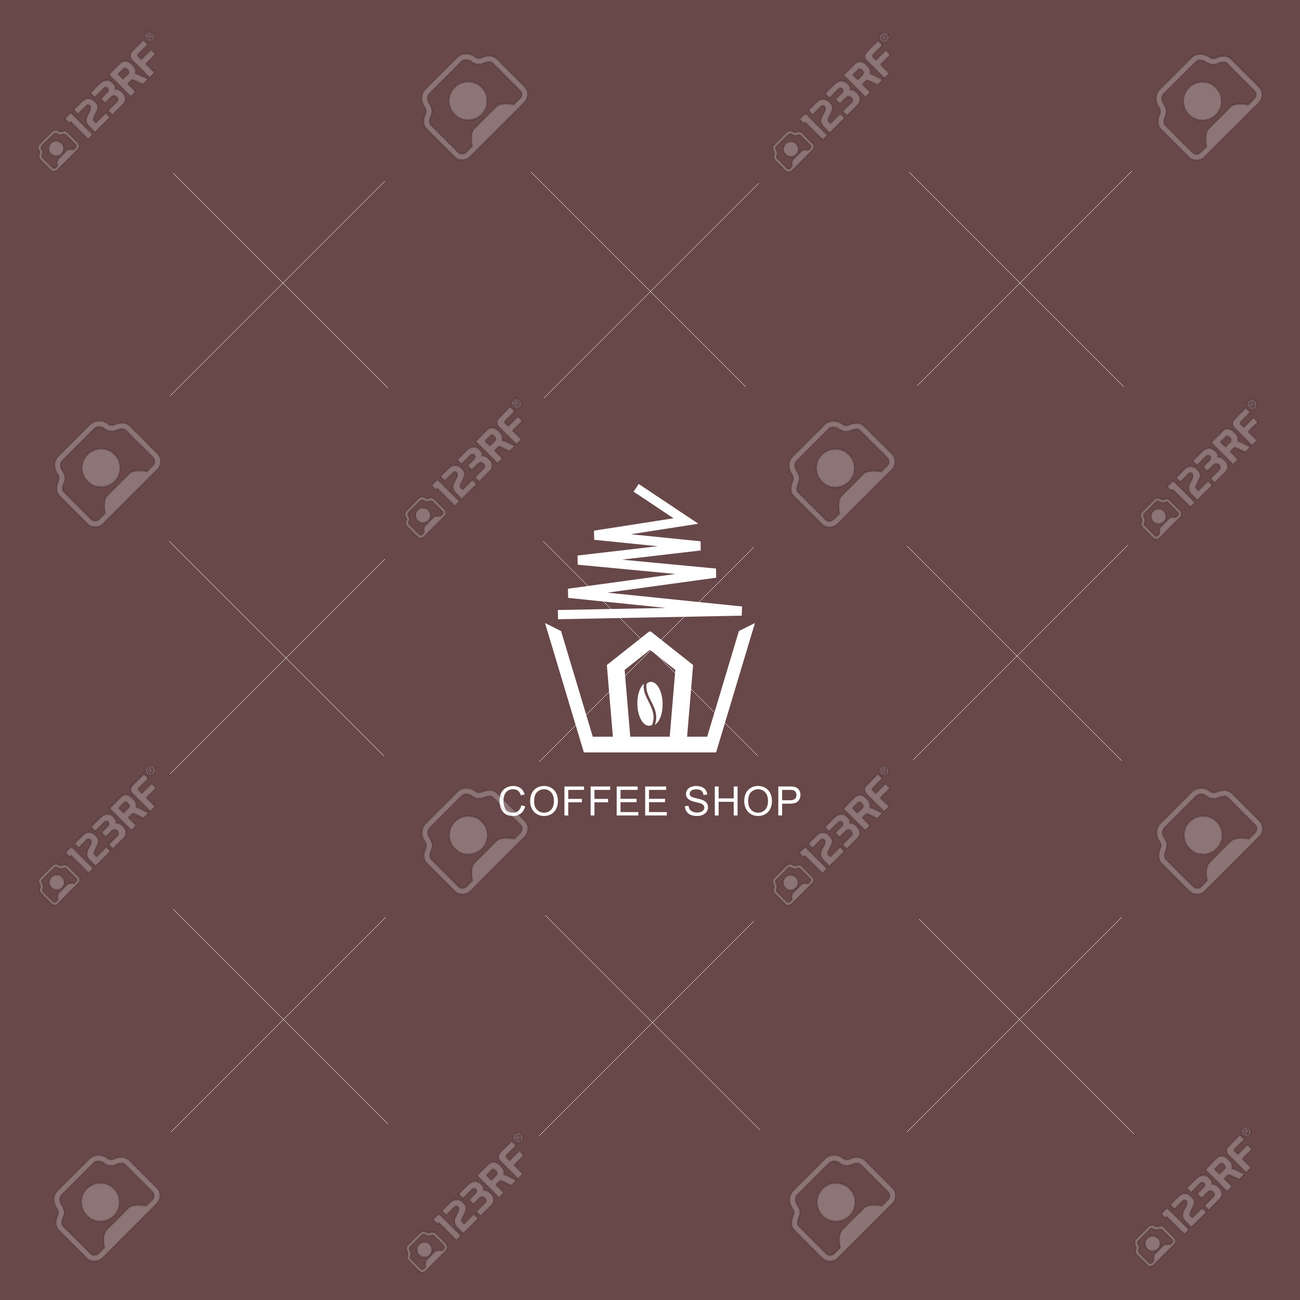 Coffee Shop Logo Simple Natural Home Logo Design Cafe Or Restaurant Royalty Free Cliparts Vectors And Stock Illustration Image 153251118